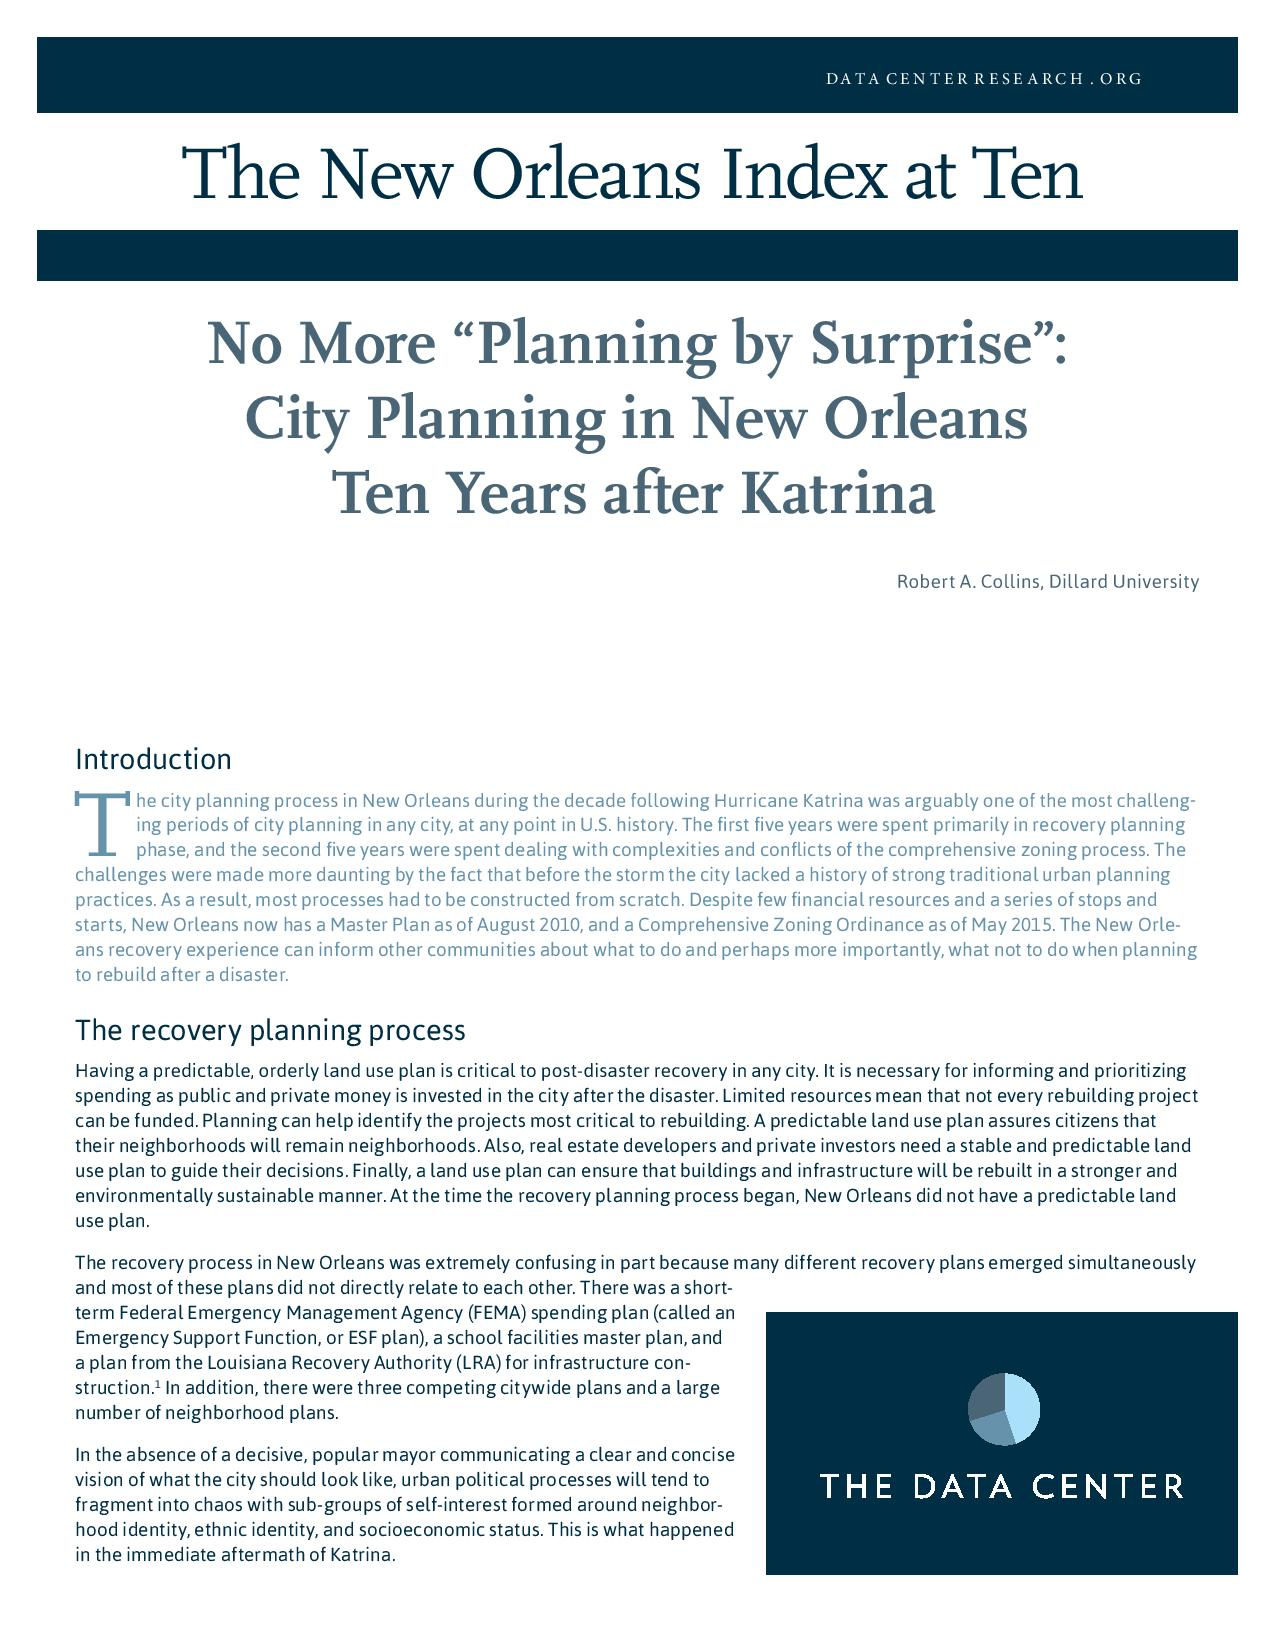 "No More ""Planning by Surprise"": City Planning in New Orleans Ten Years after Katrina"